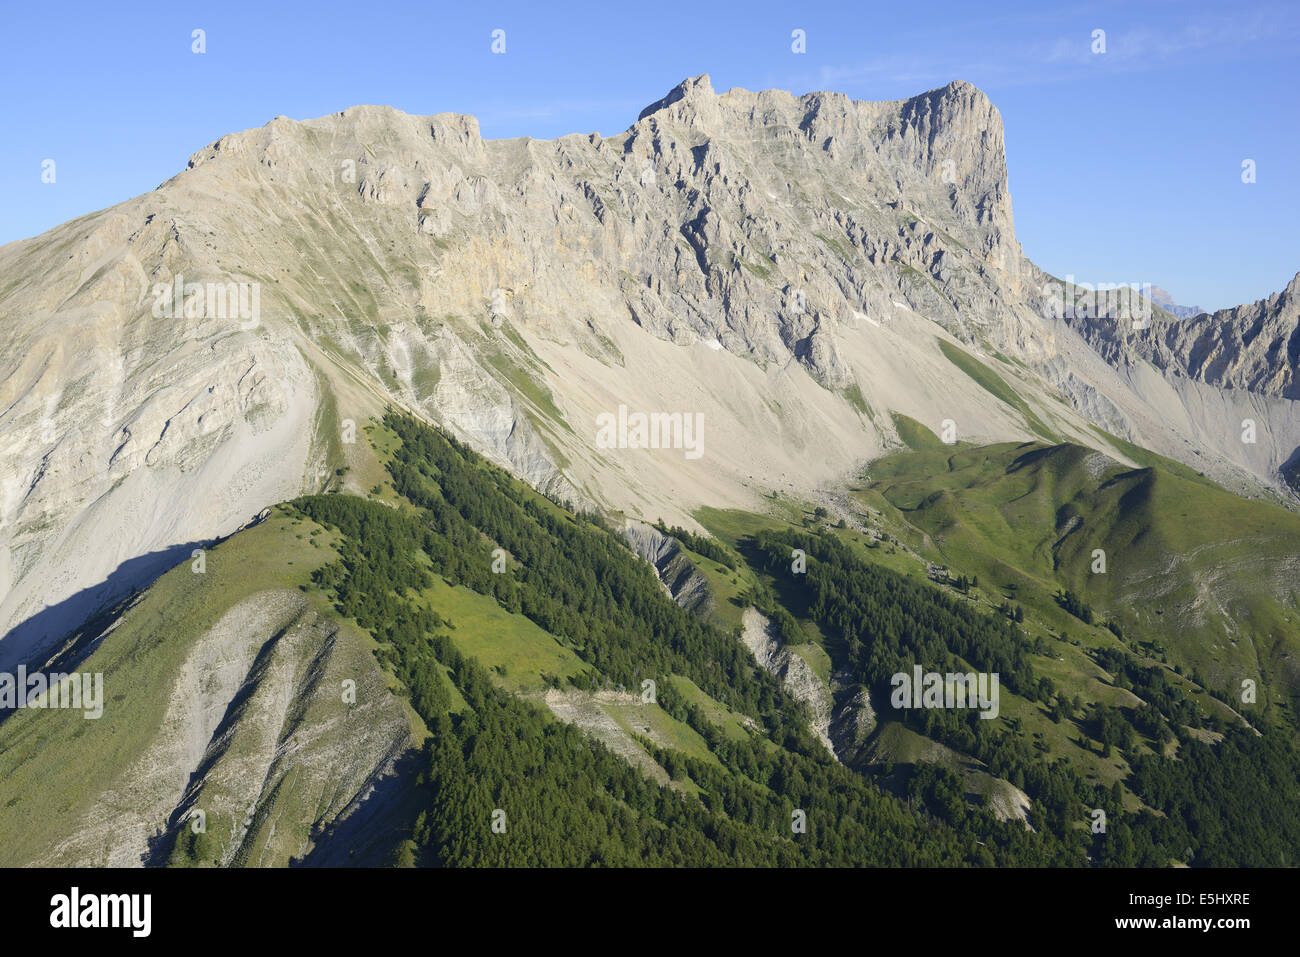 600-METER HIGH, EASTERN LIMESTONE CLIFF OF PIC DE BURE 2703m (aerial view). Massif du Dévoluy, Hautes-Alpes, - Stock Image